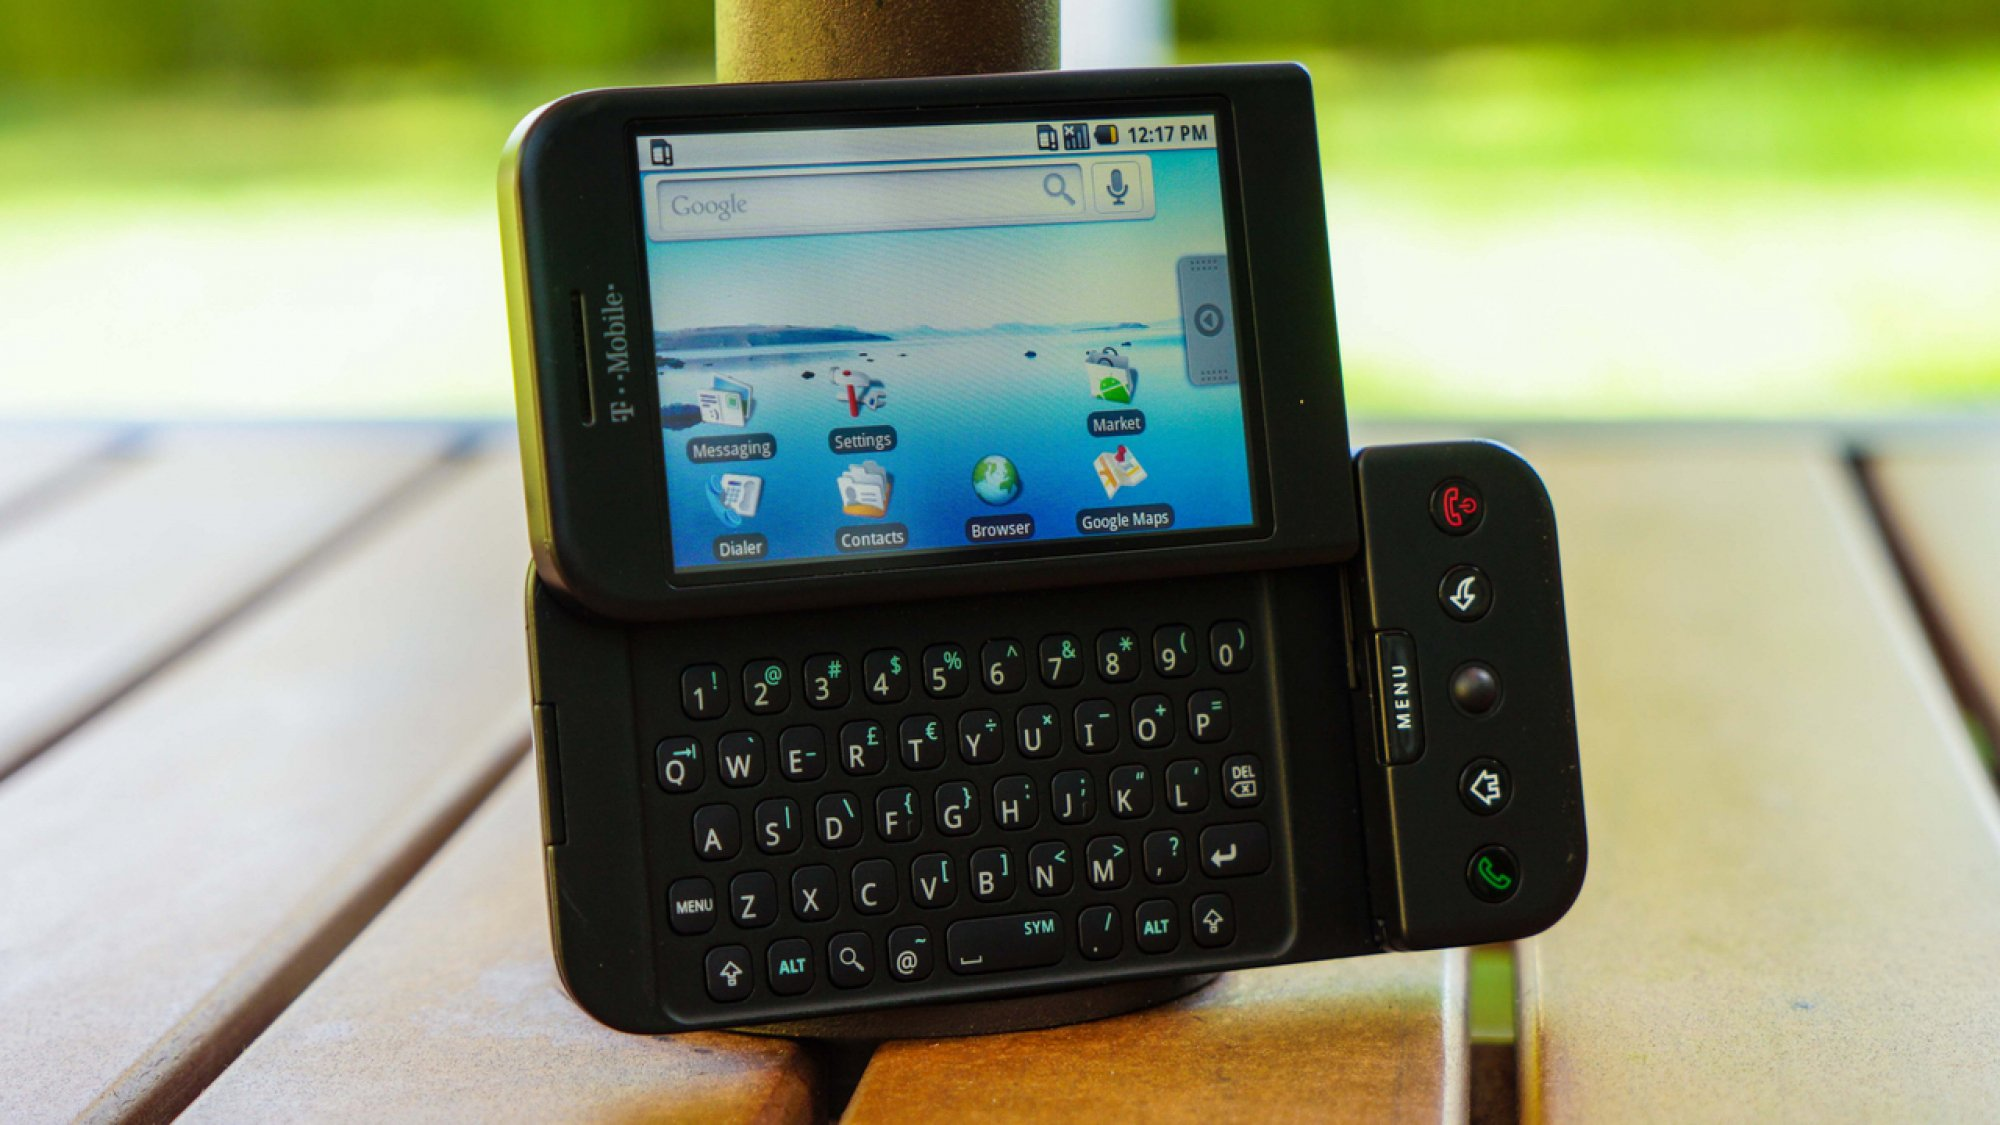 android, android os, htc, htc dream, t-mobile g1, first android phone, first android smartphone